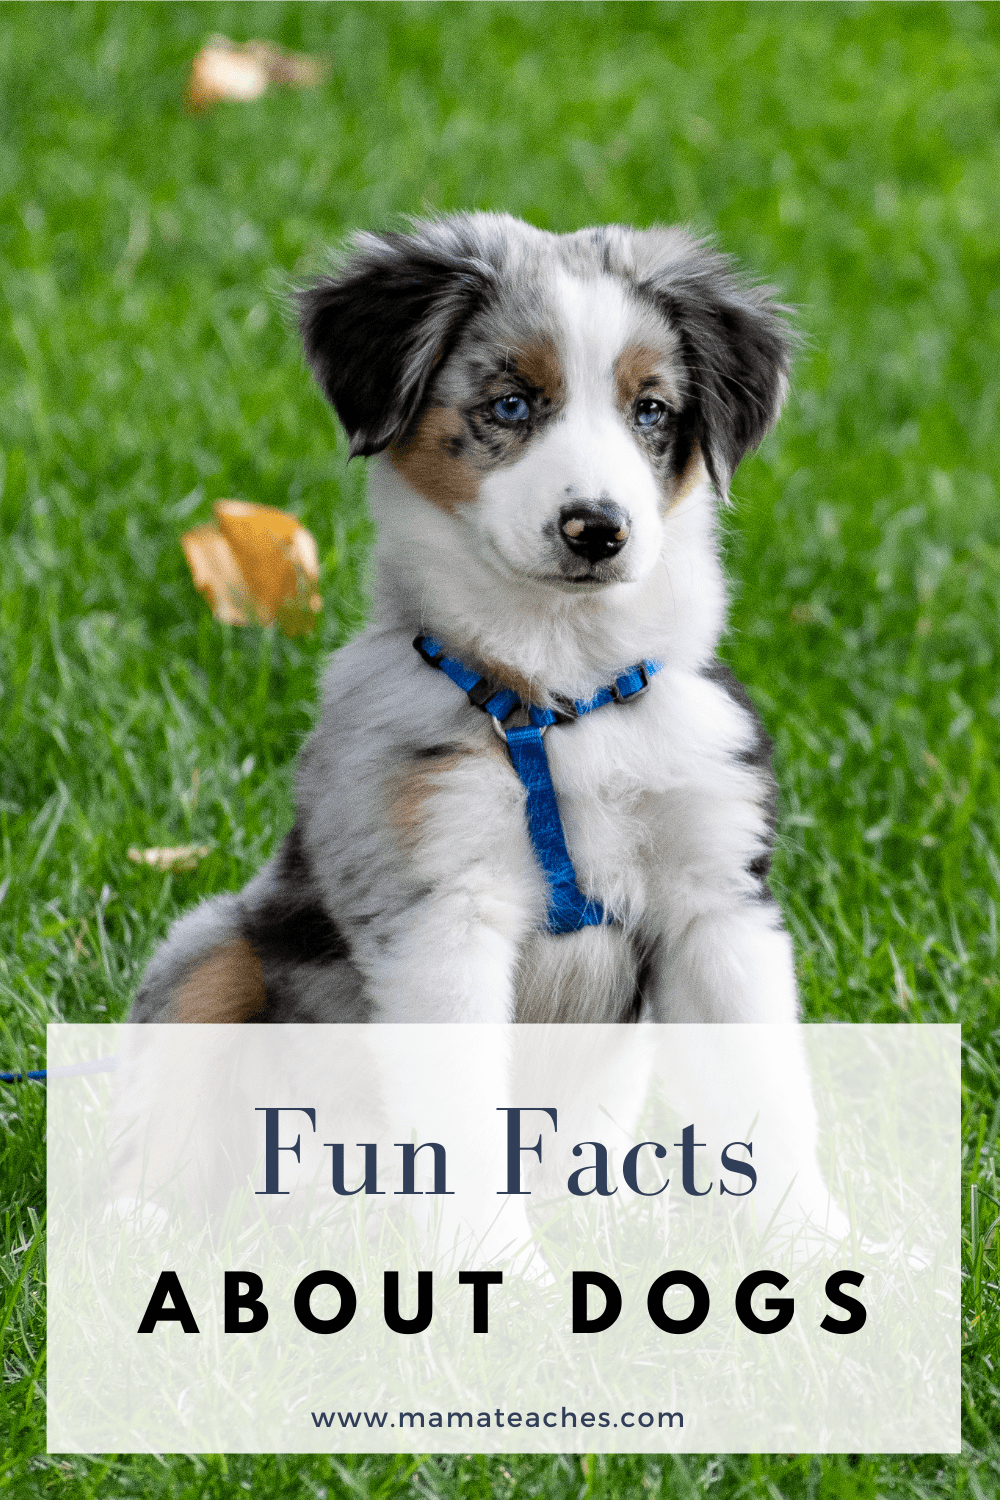 Fun Facts About Dogs